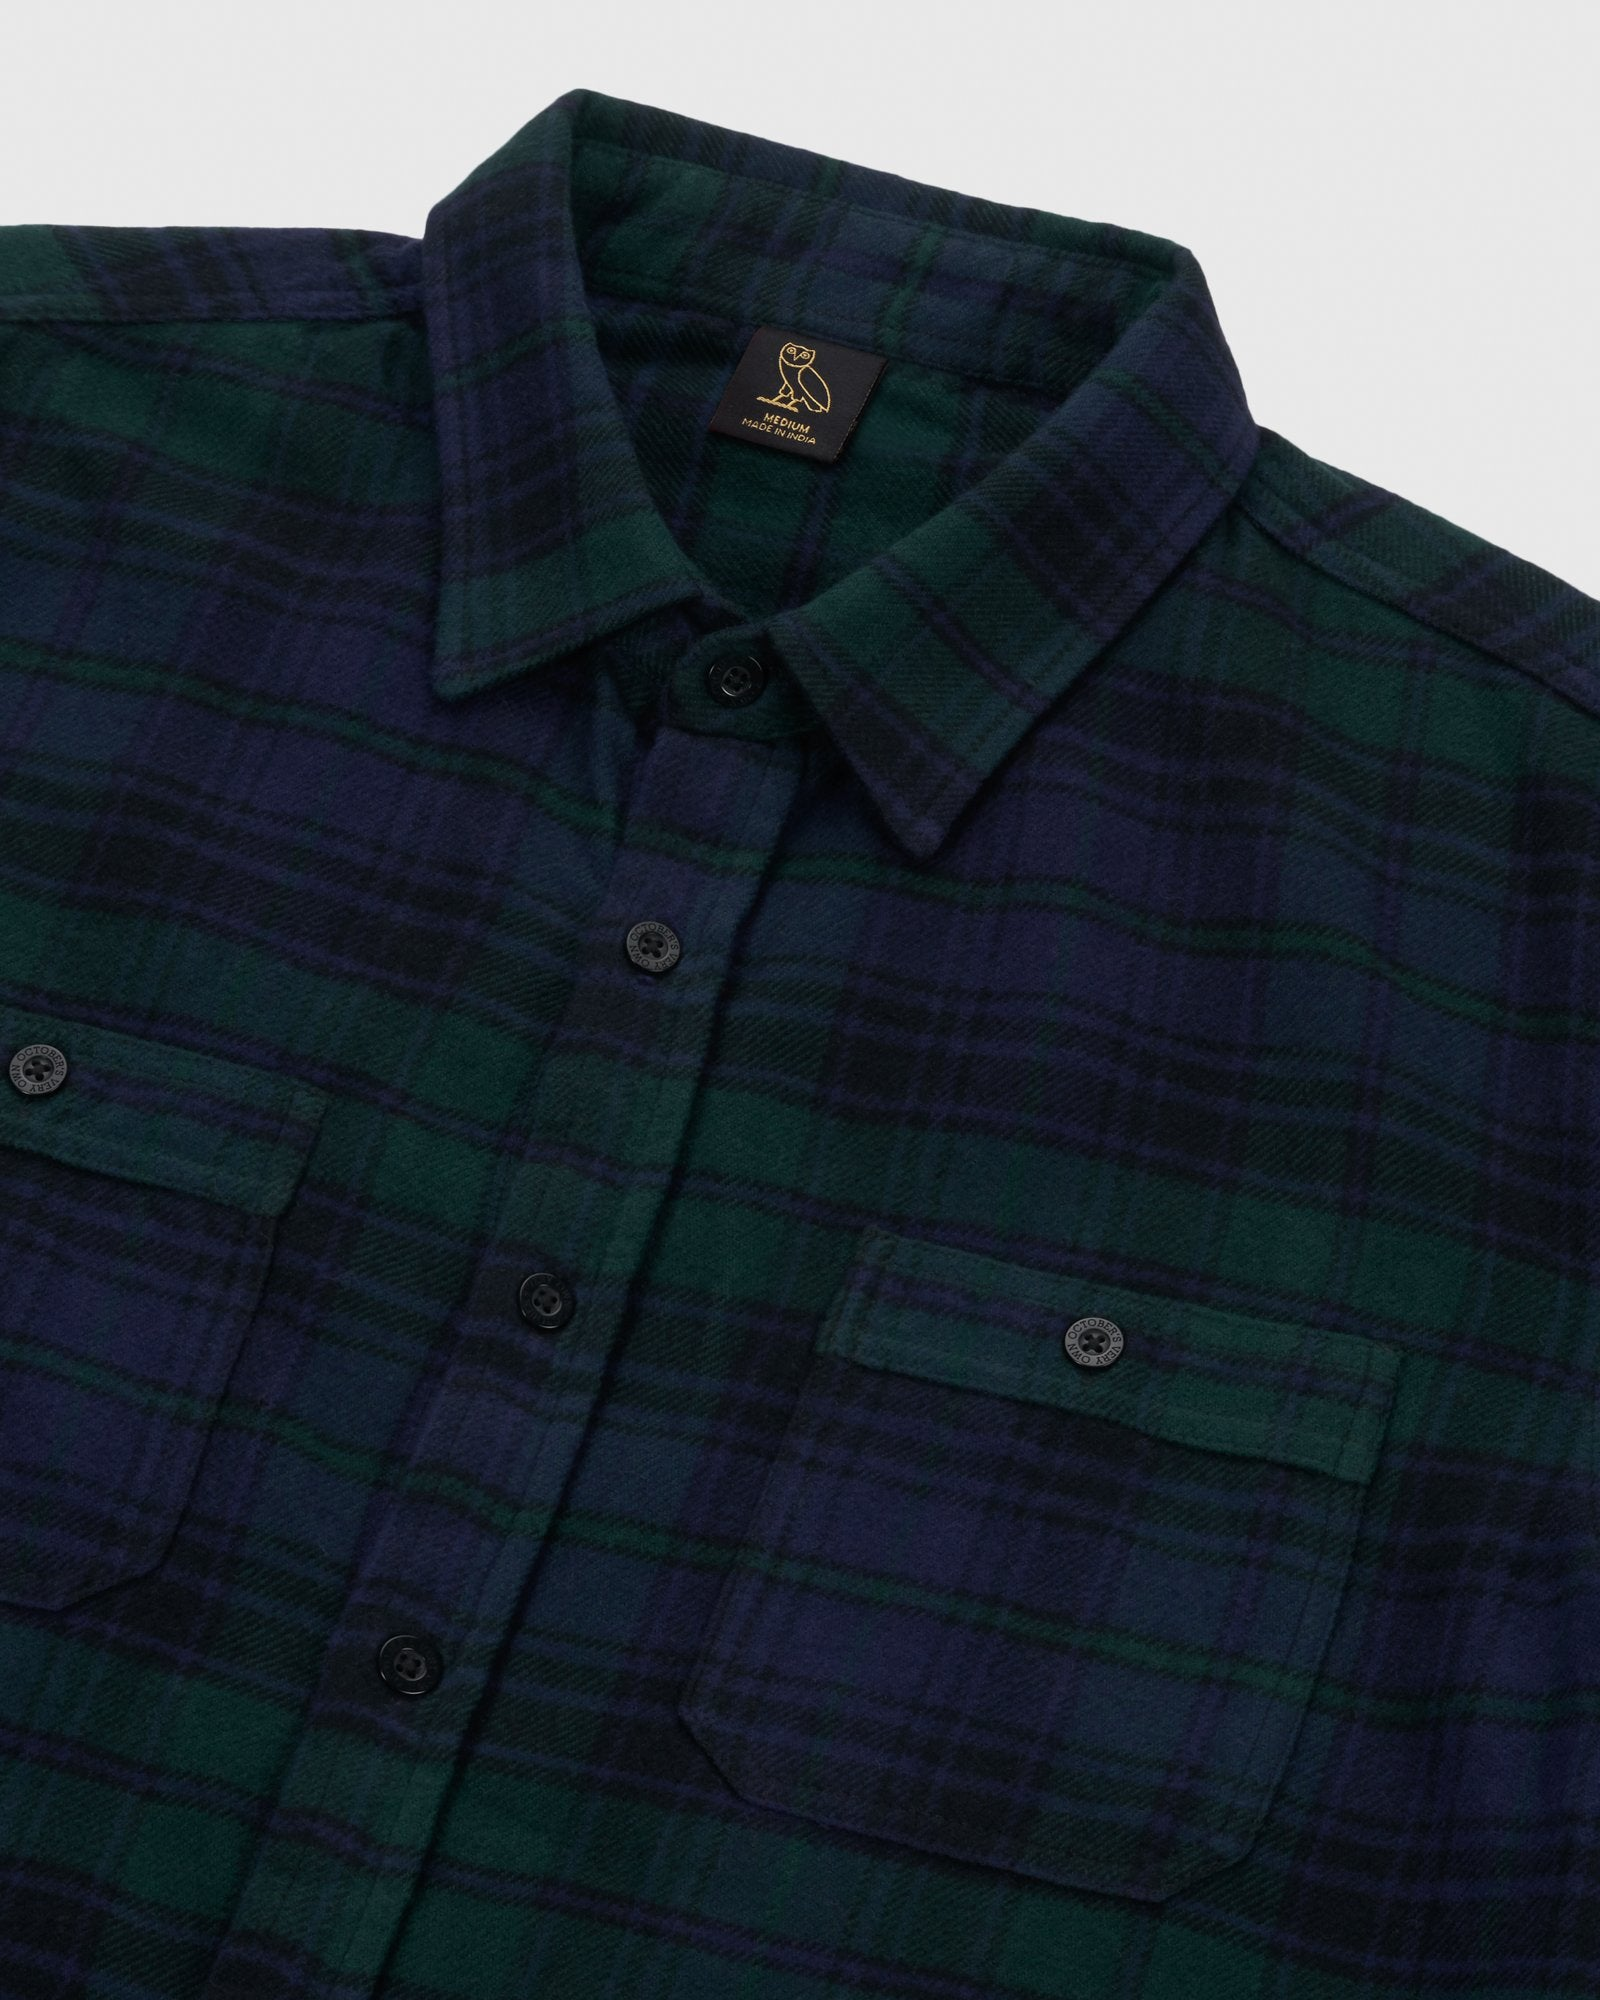 CIRCLE WORDMARK FLANNEL - BLACKWATCH IMAGE #4